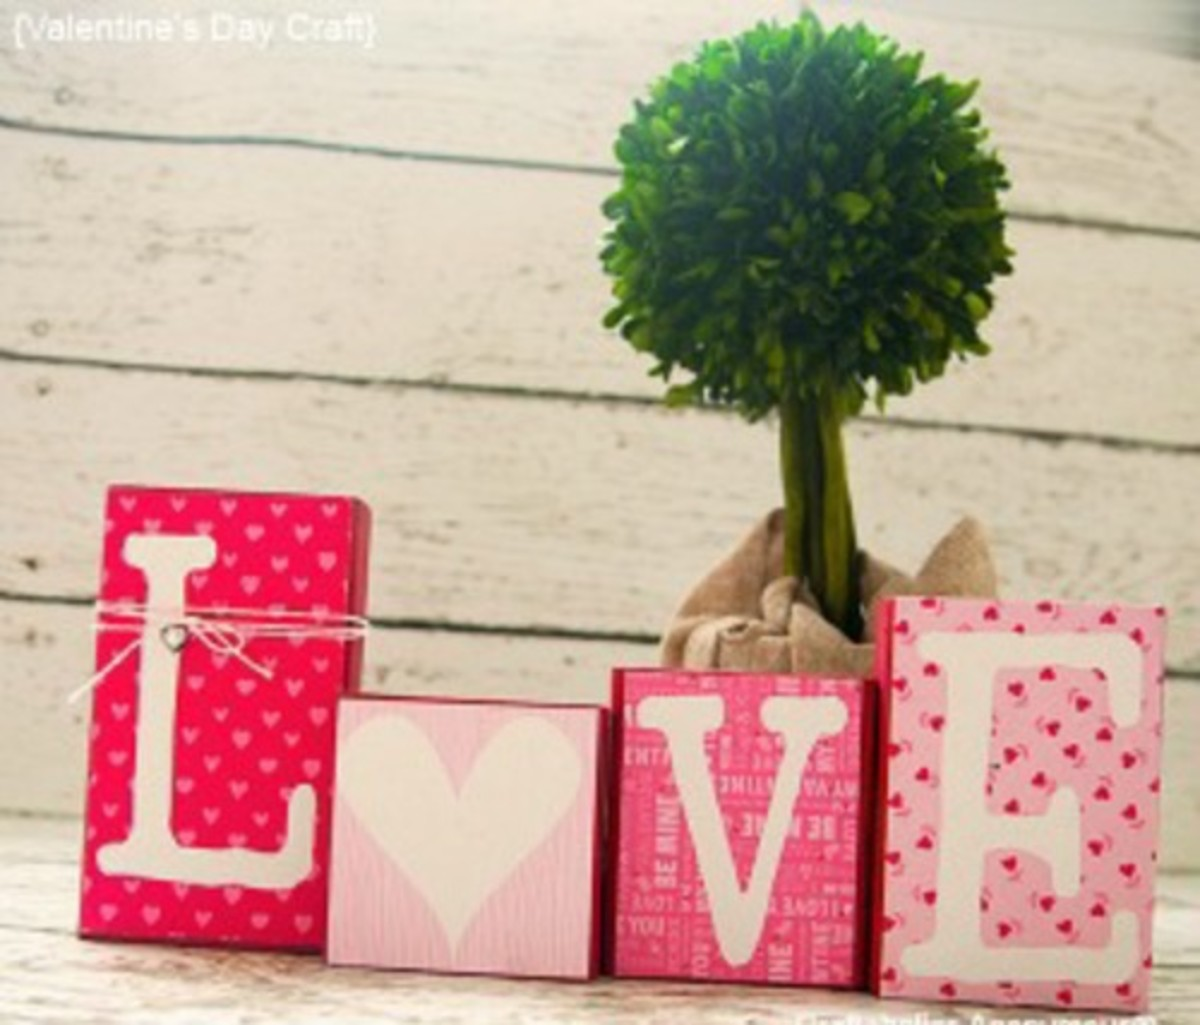 57 Craft Ideas for Making Valentine Gifts and Decorations